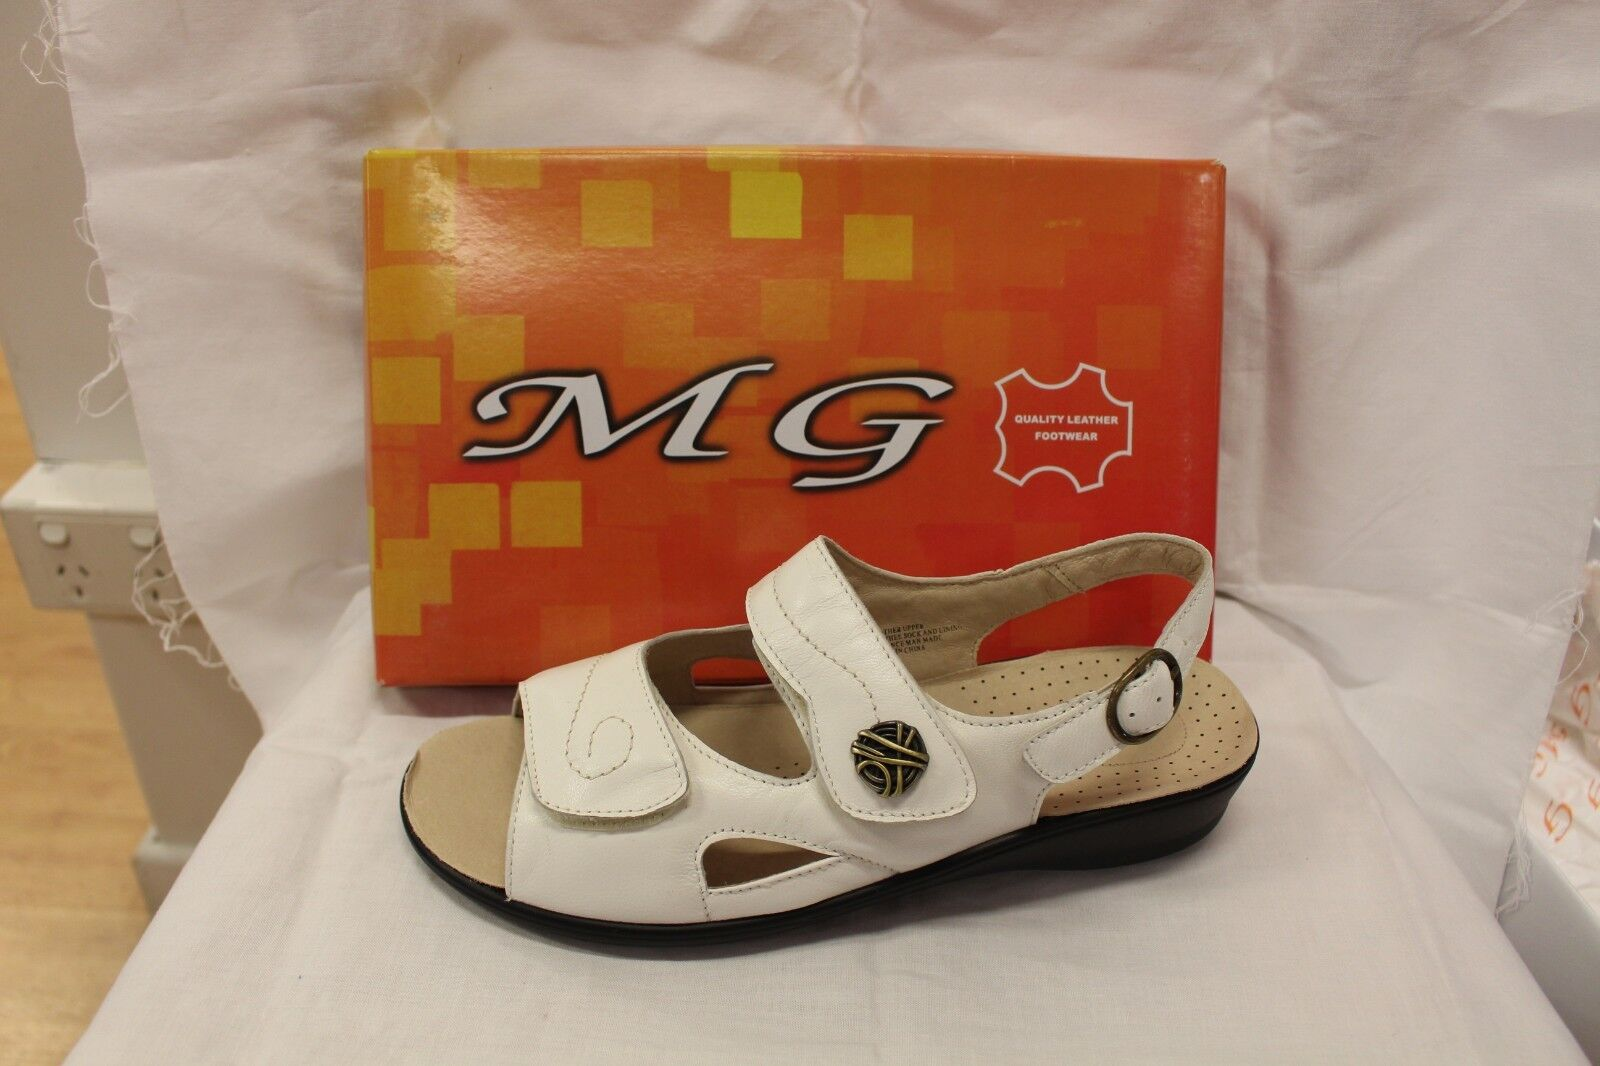 LADIES SHOES FOOTWEAR - MG sandal Pace white